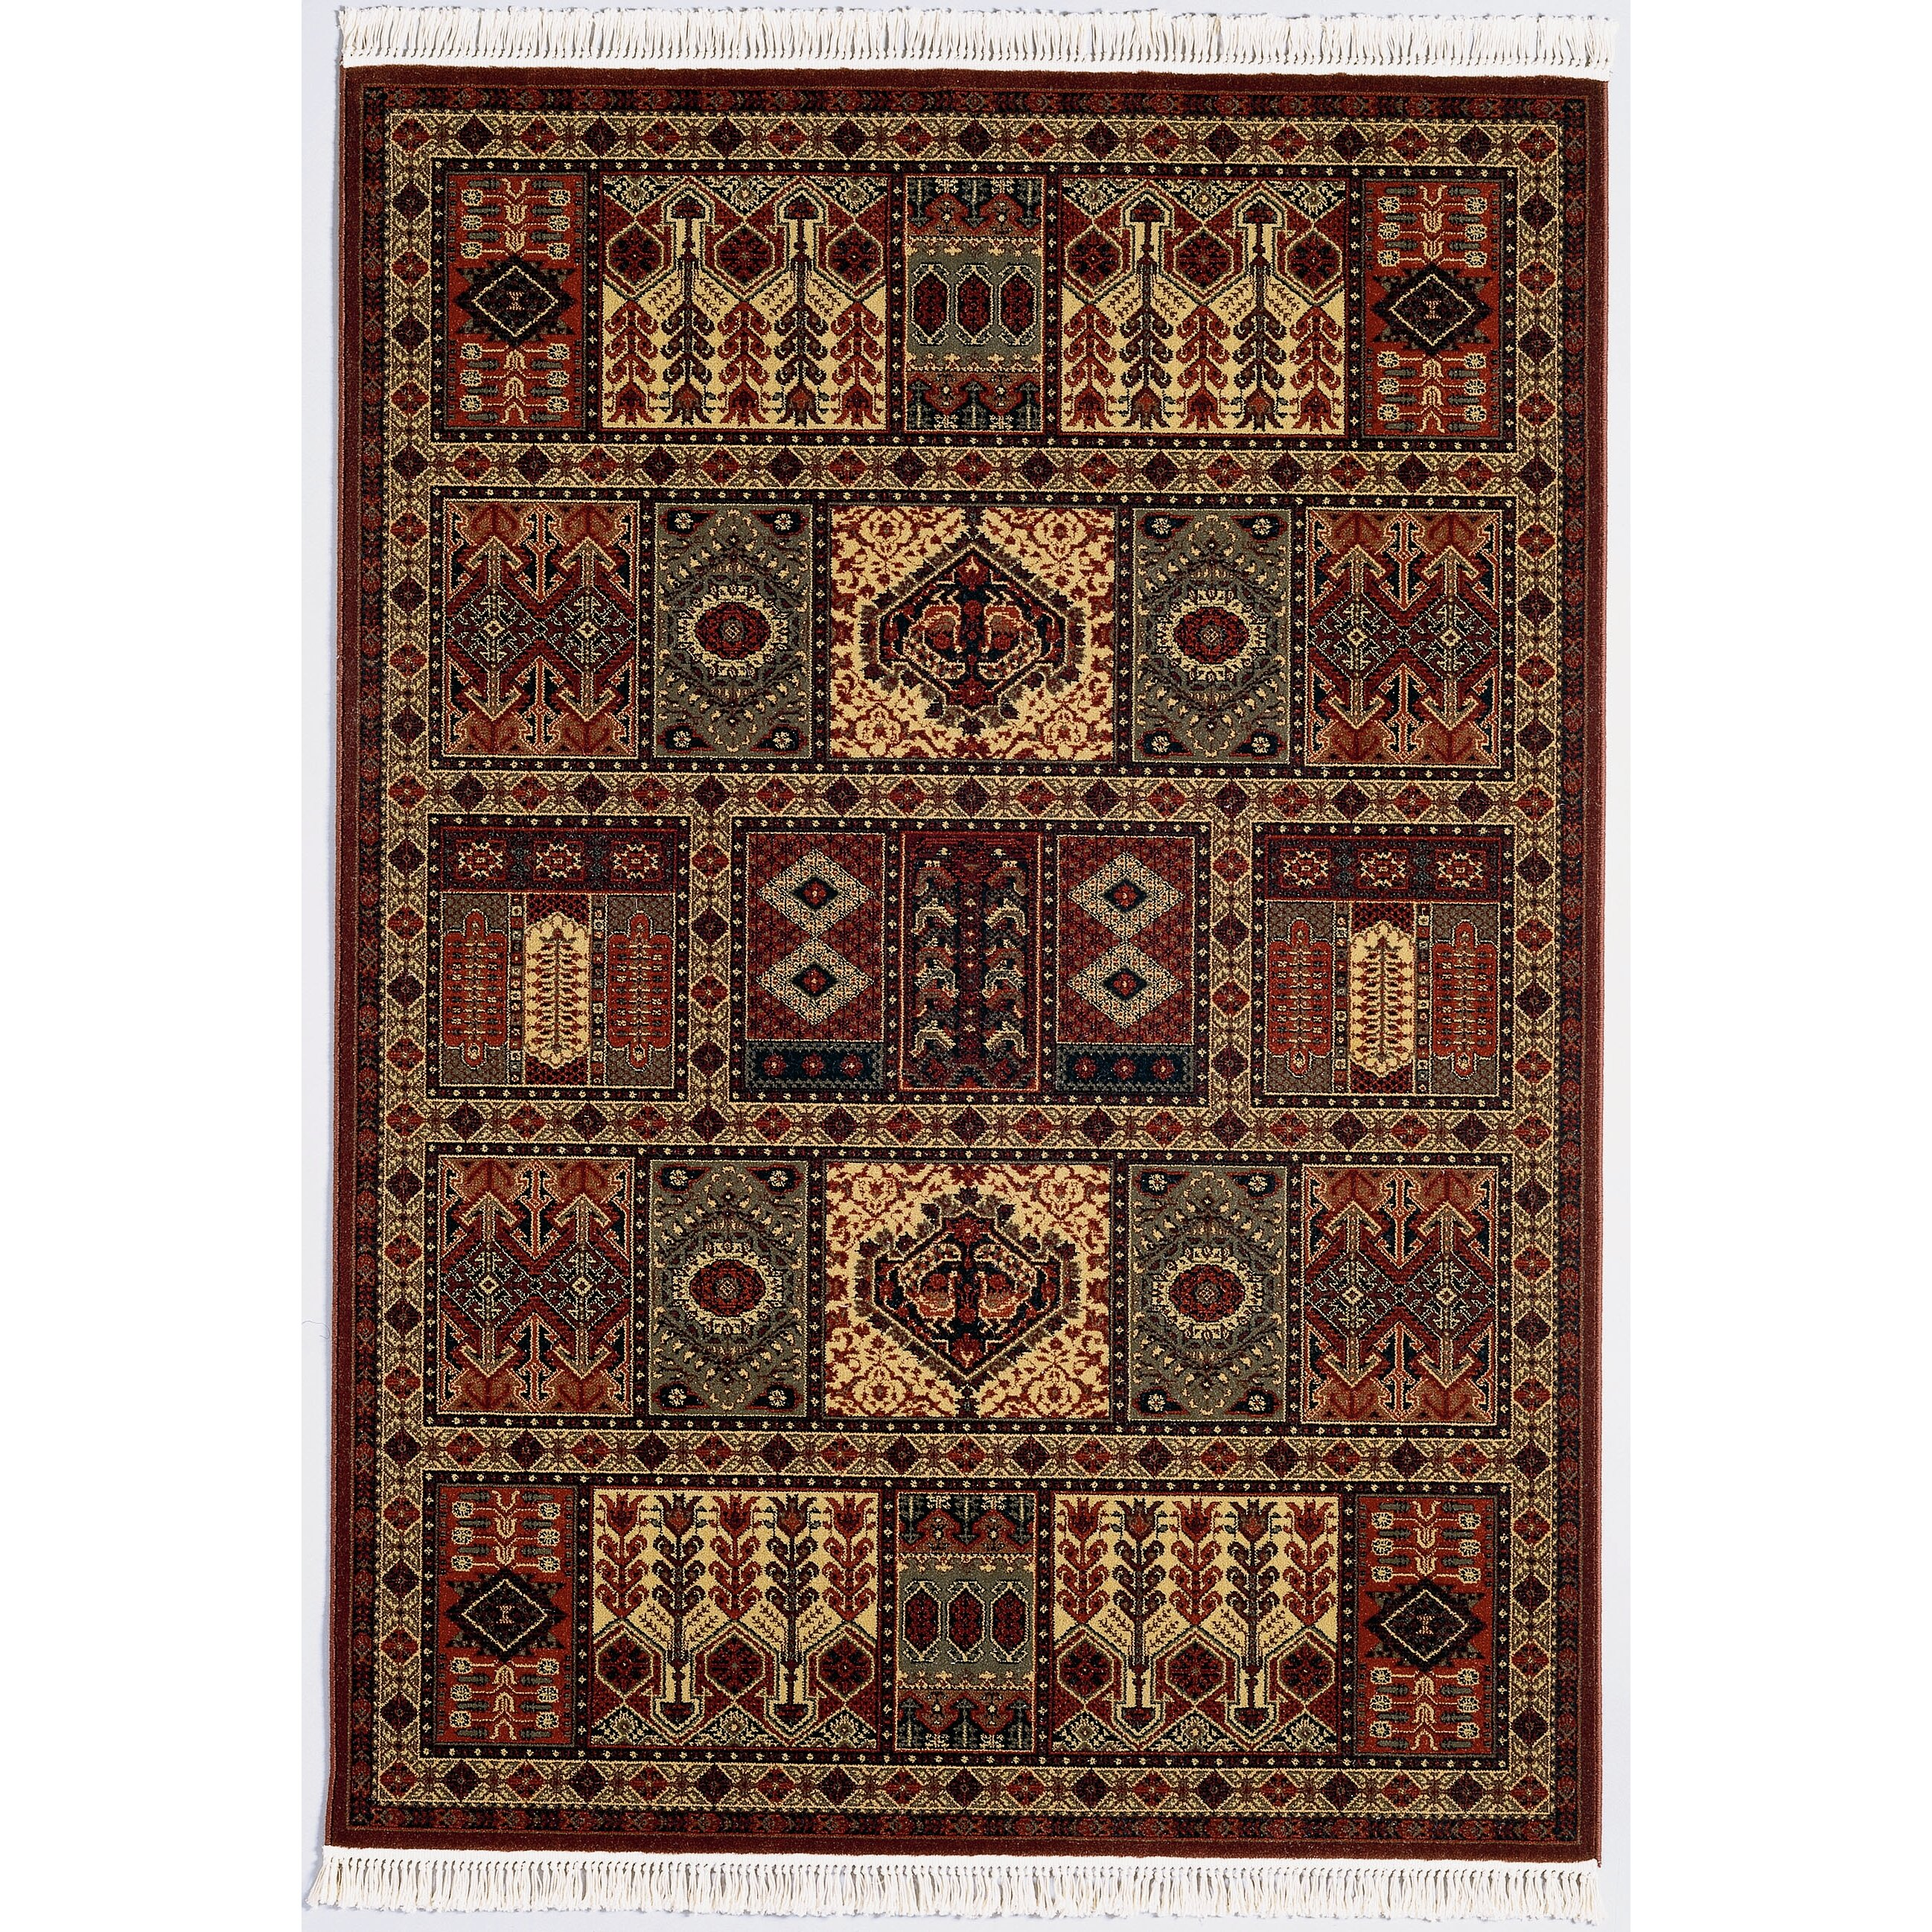 Couristan Kashimar Antique Nain Burgundy Rug & Reviews